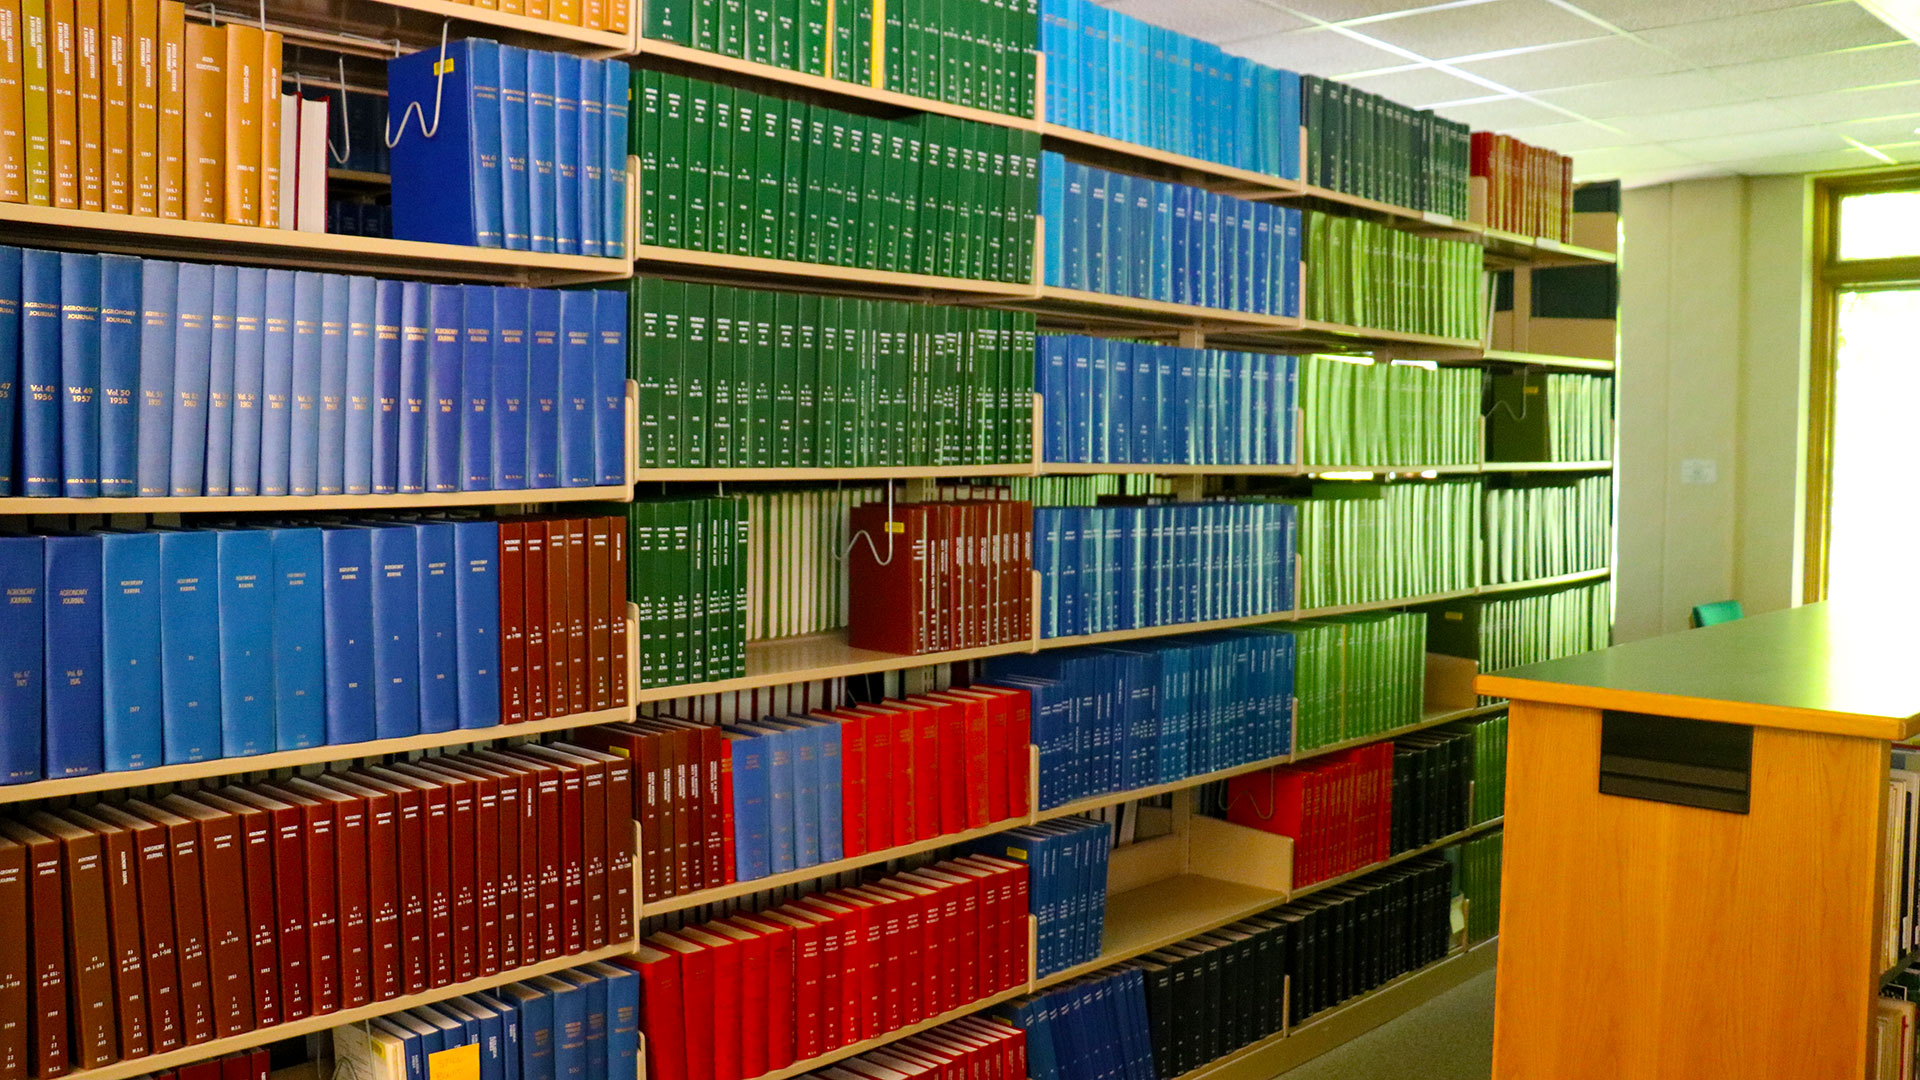 Colorful shelves of books at the KBS library.